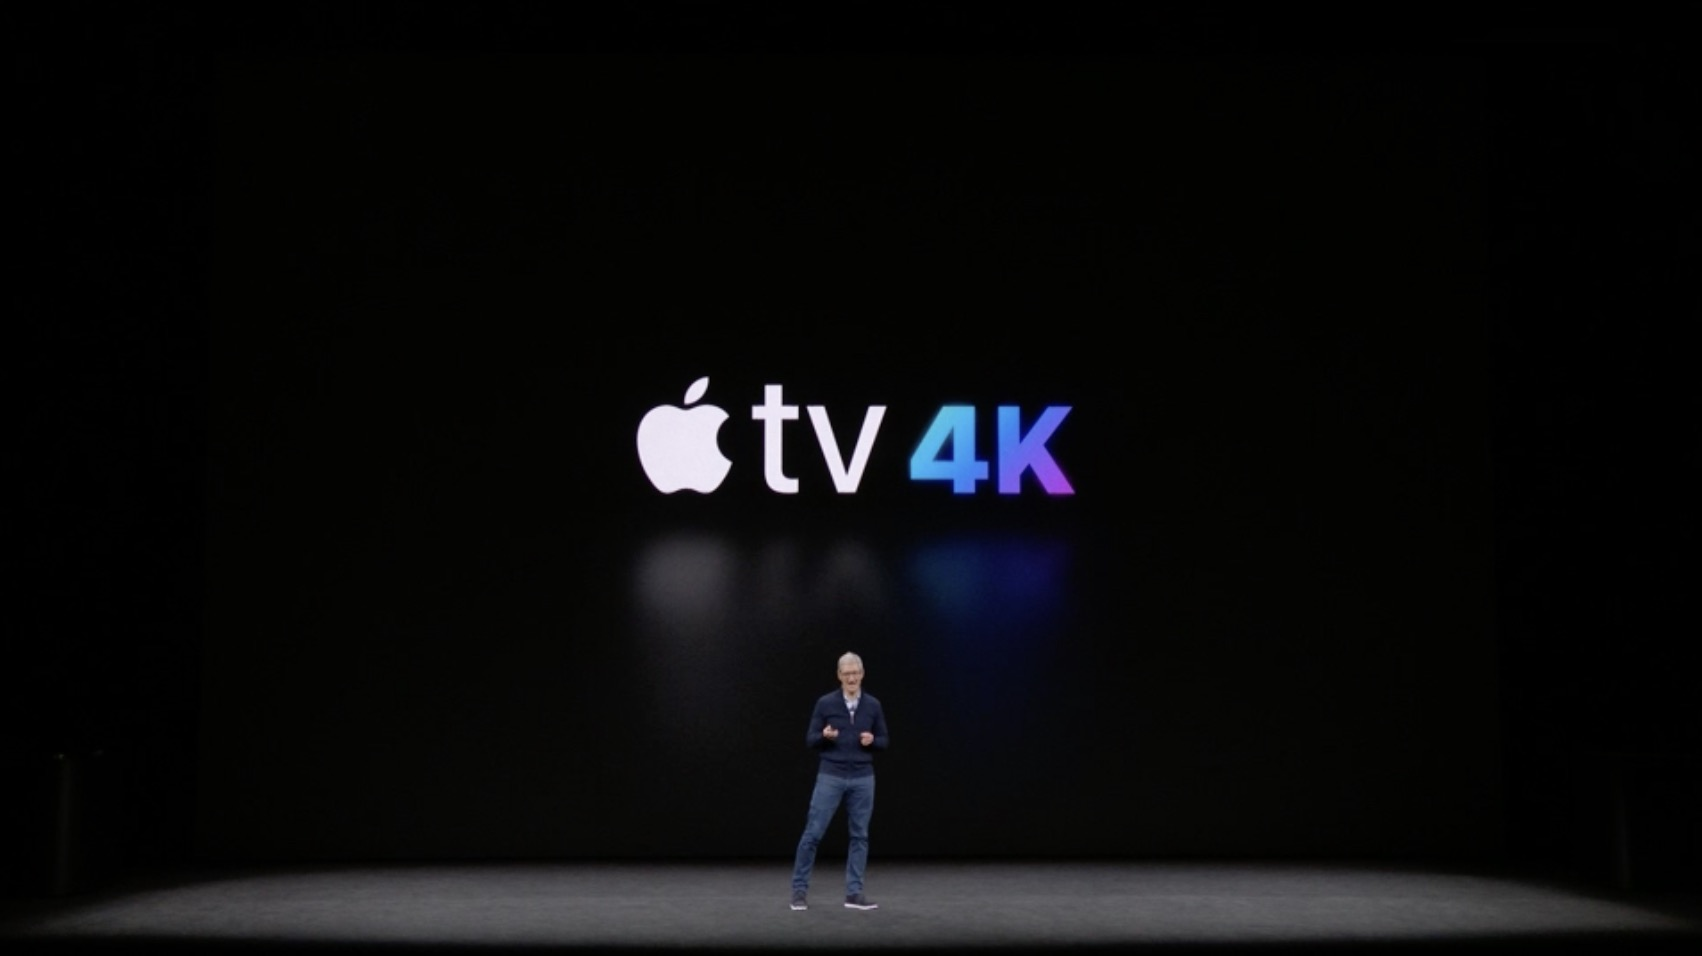 Apple TV com 4K é anunciada oficialmente